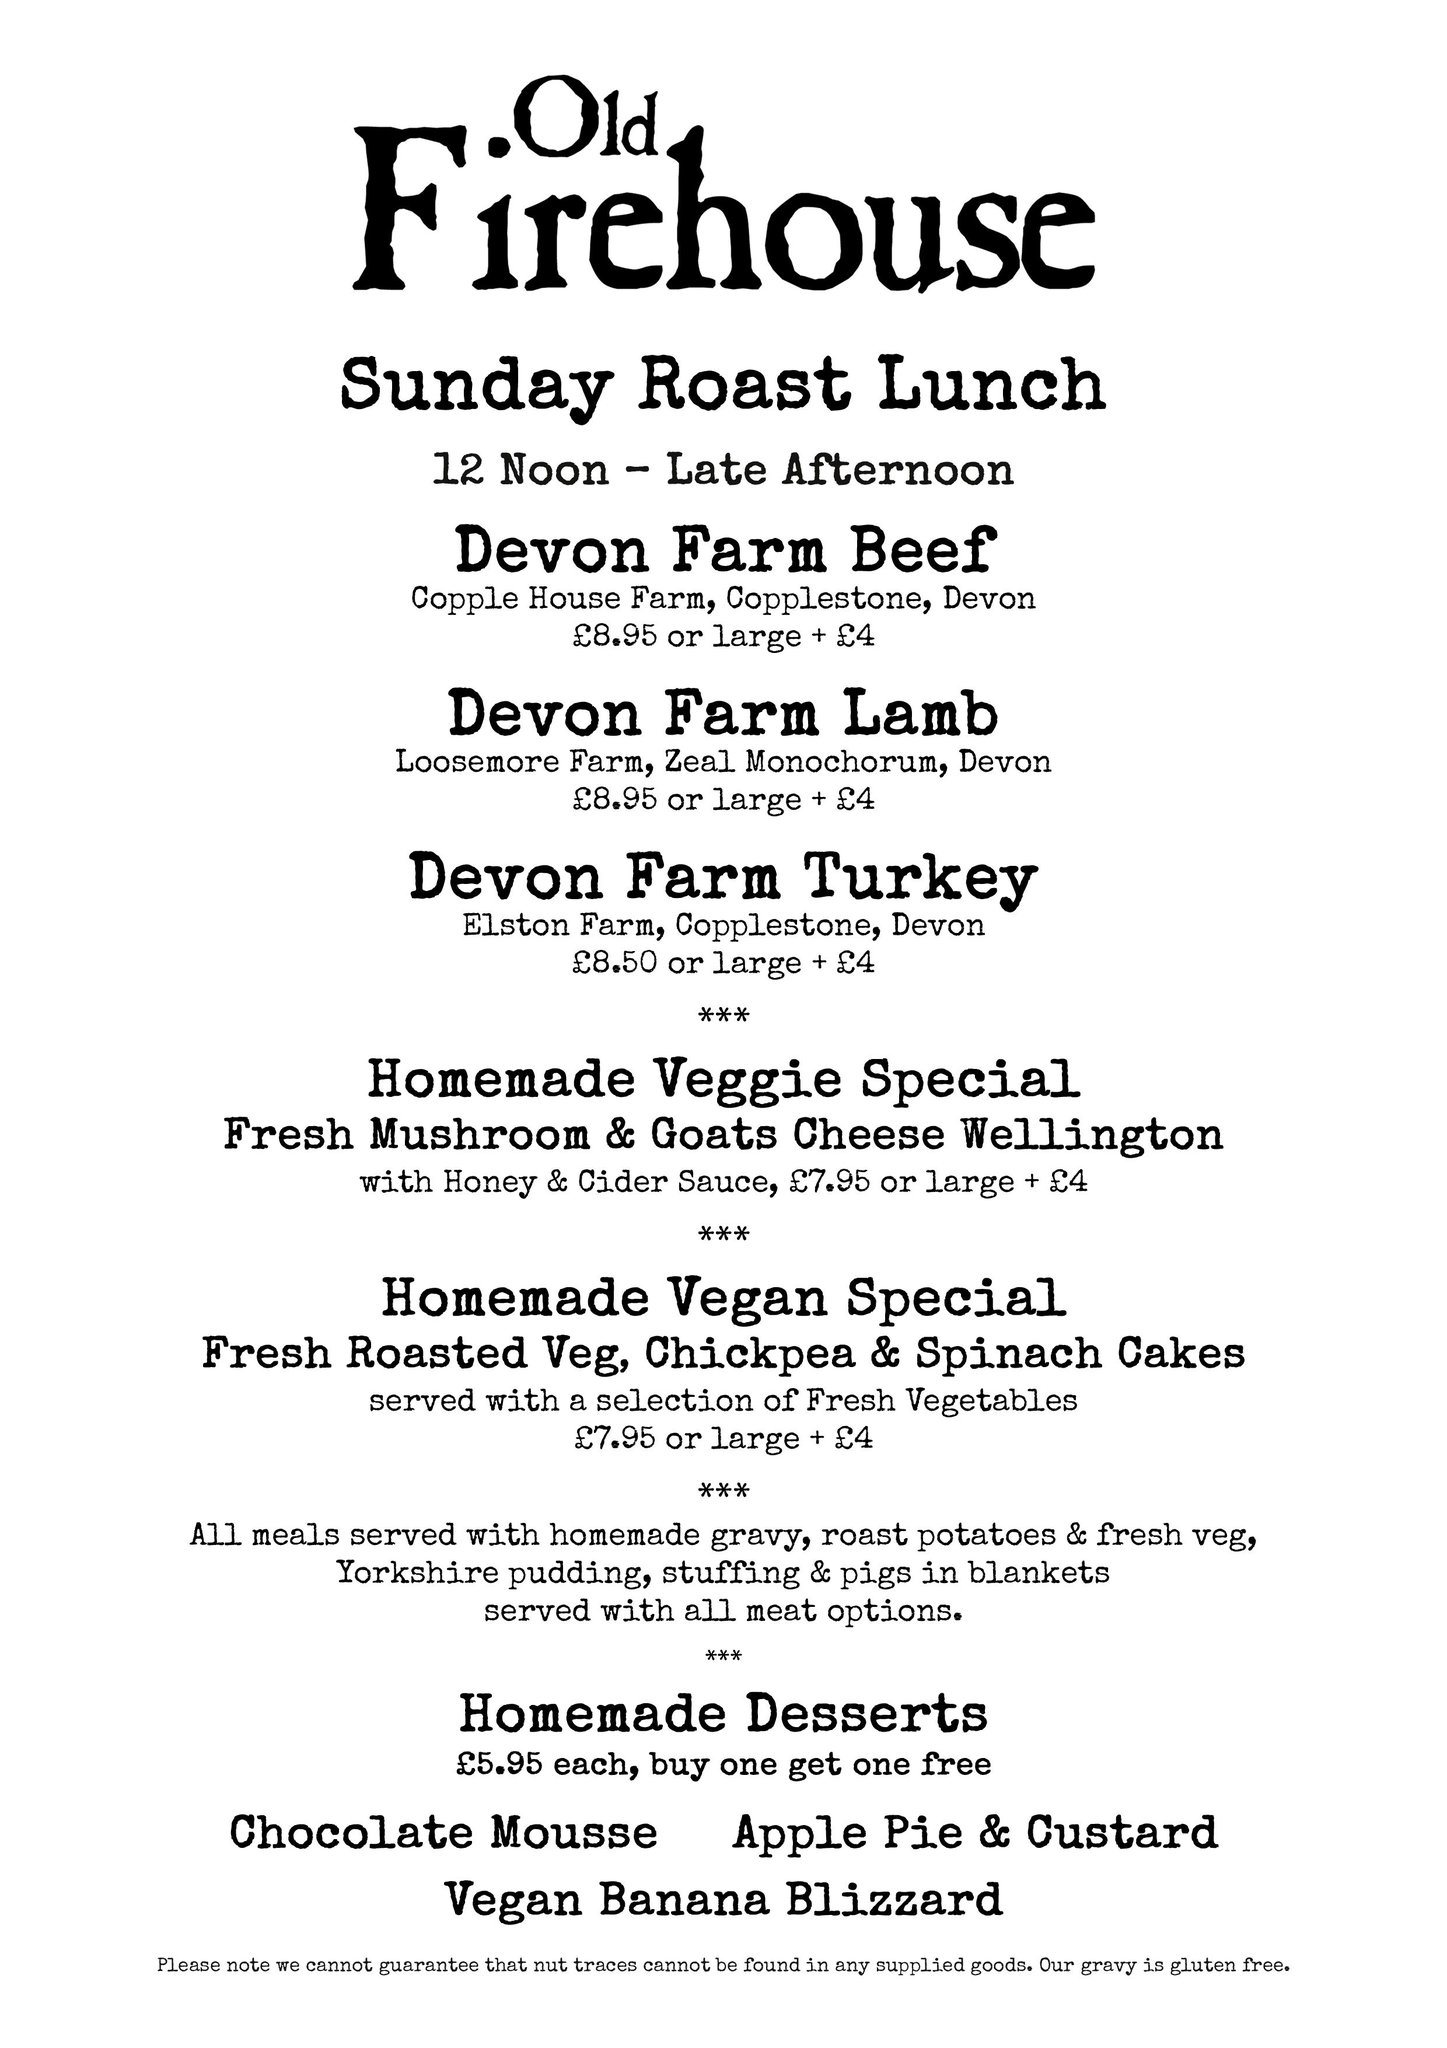 Old Firehouse Exeter On Twitter This Sundays Roast Lunch